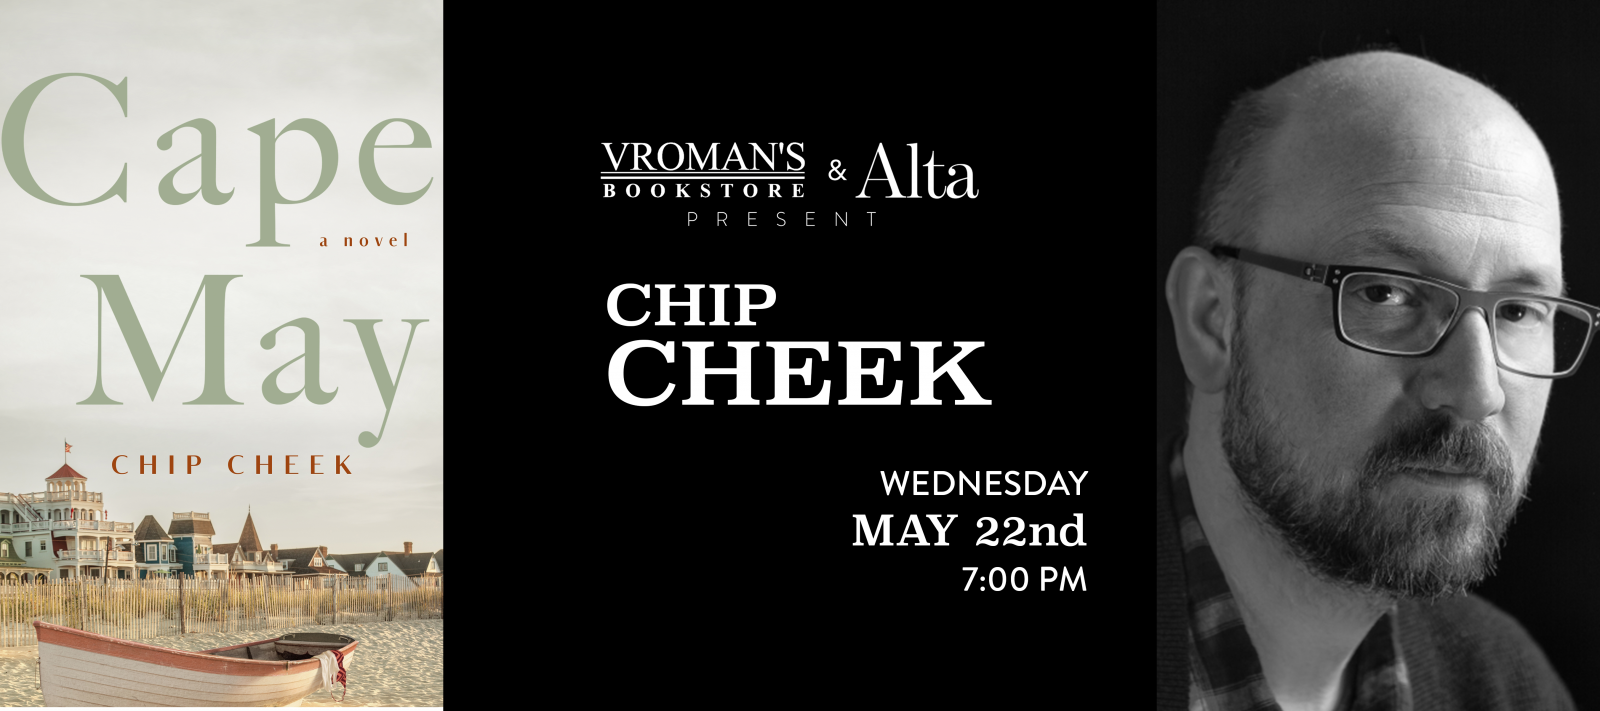 Chip Cheek book signing Wednesday May 22nd at 7pm